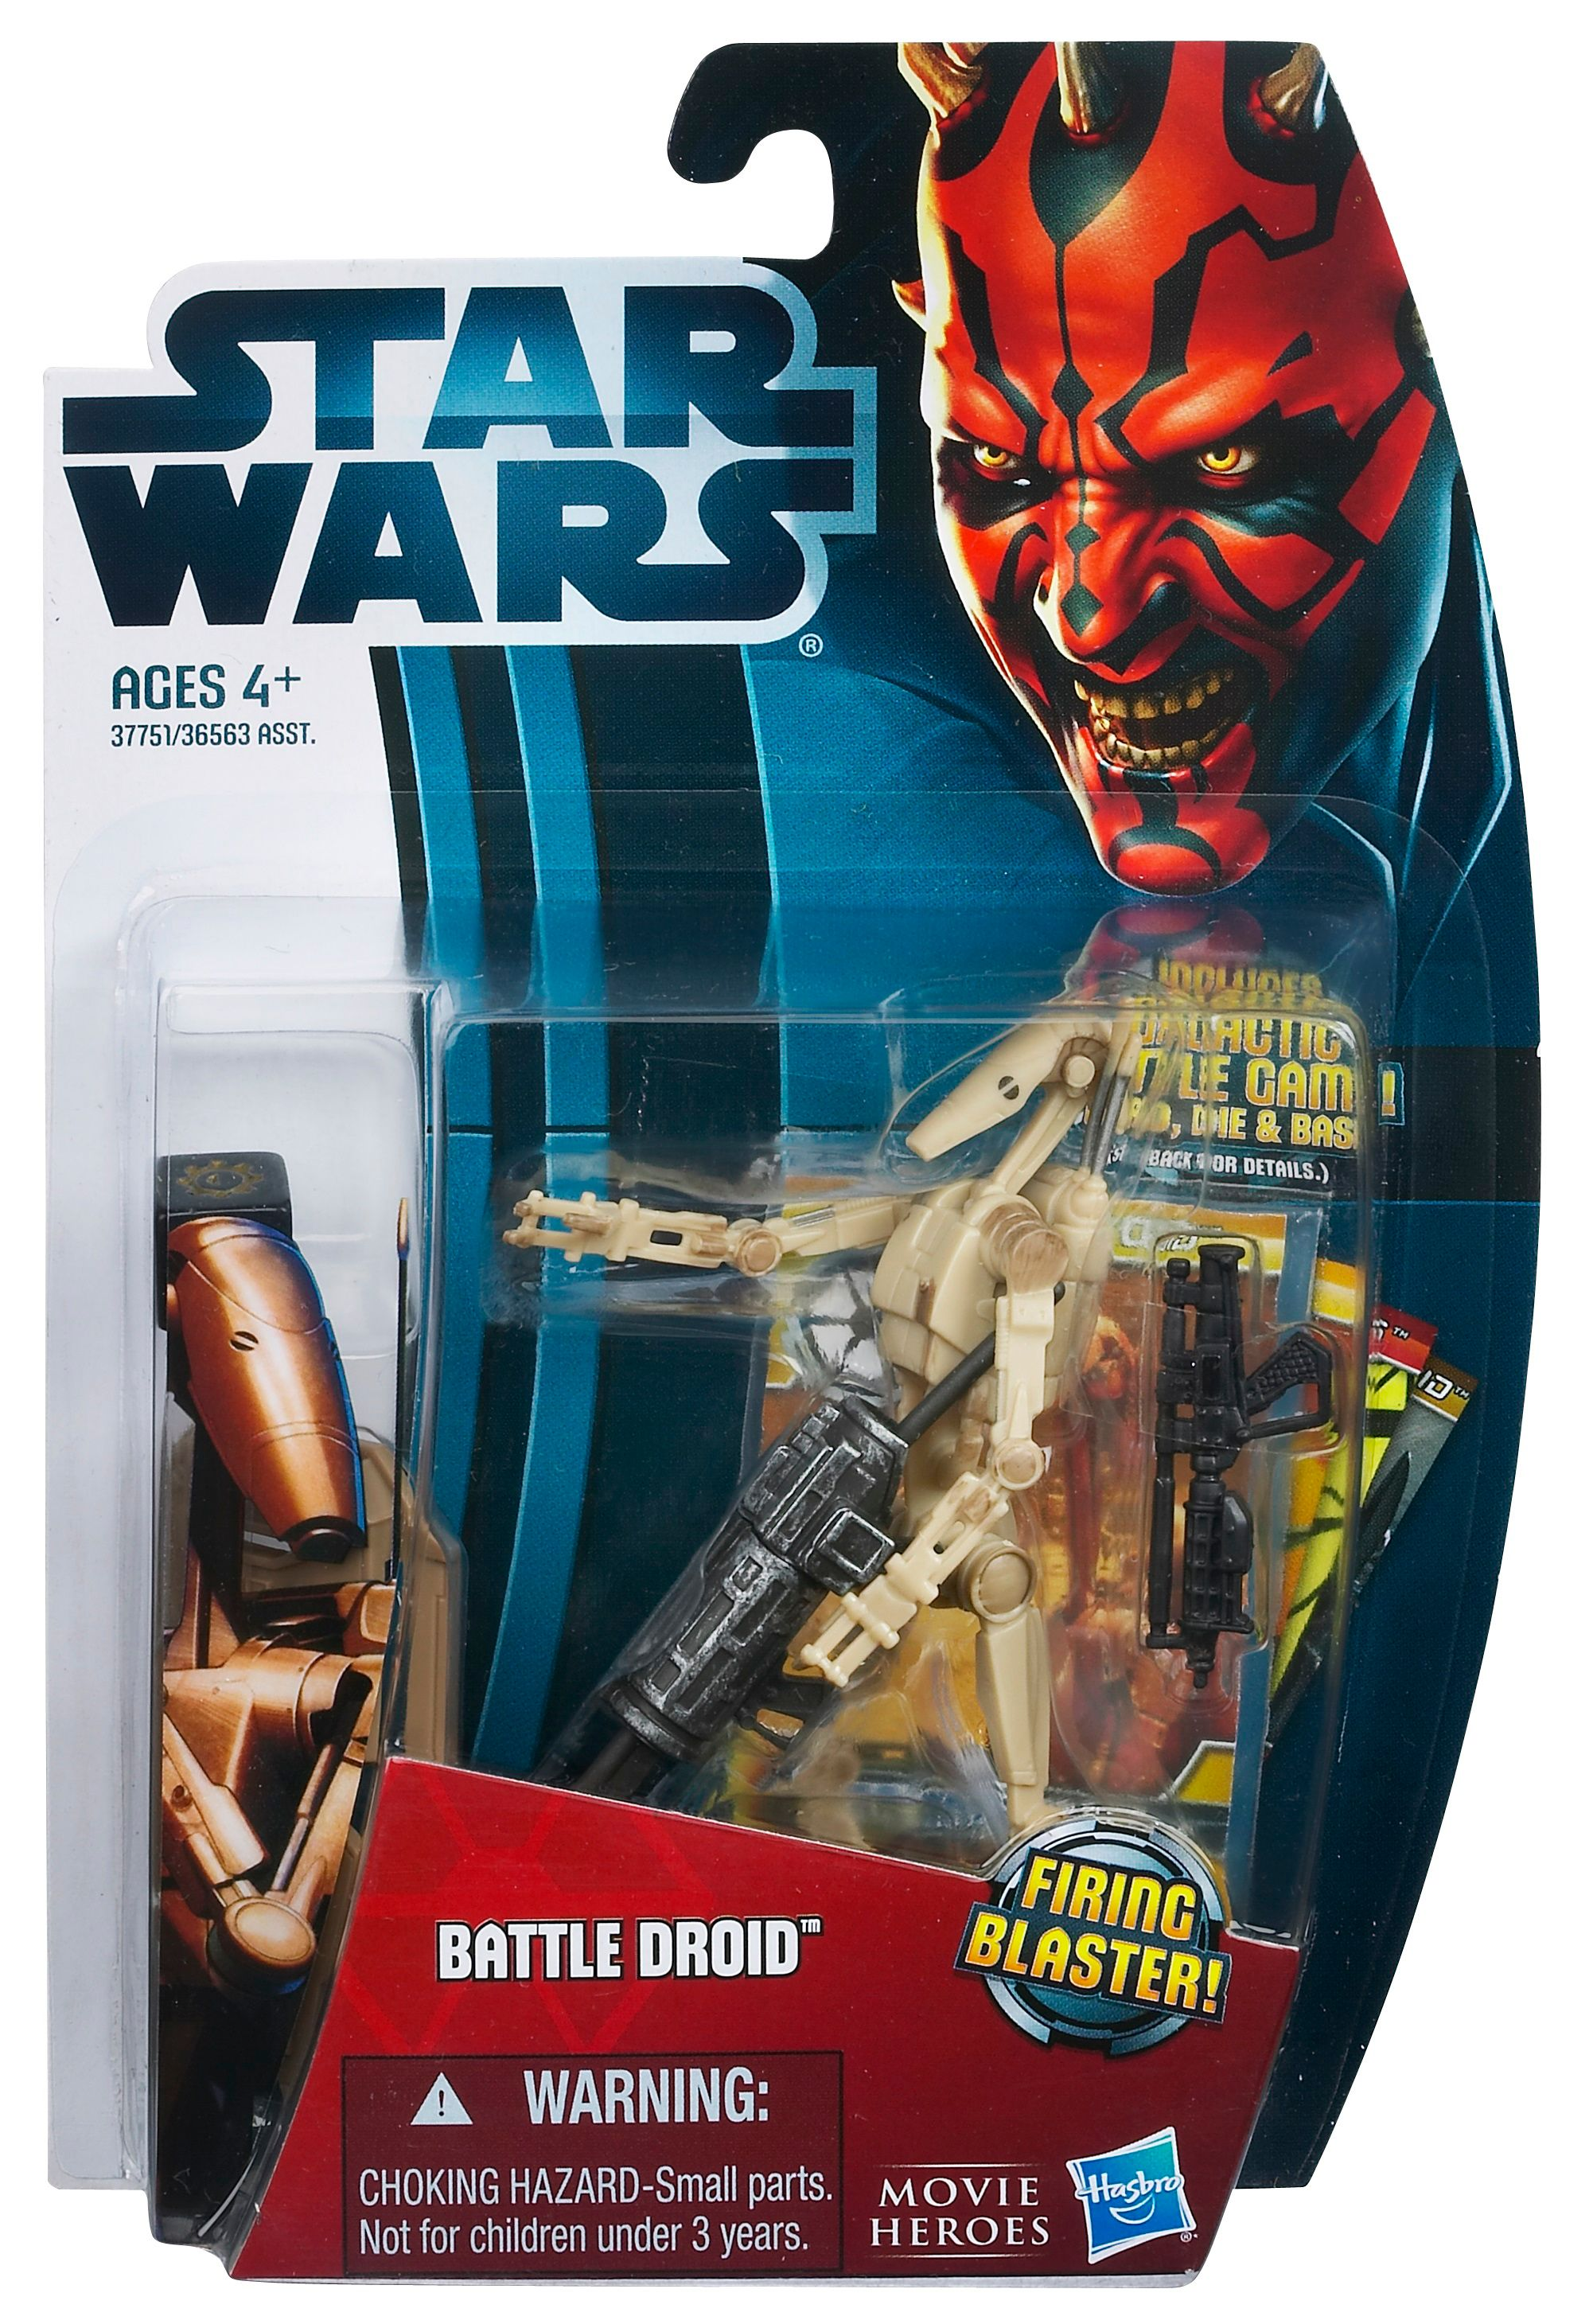 Star Wars Battle Droid Movie Heroes Figure